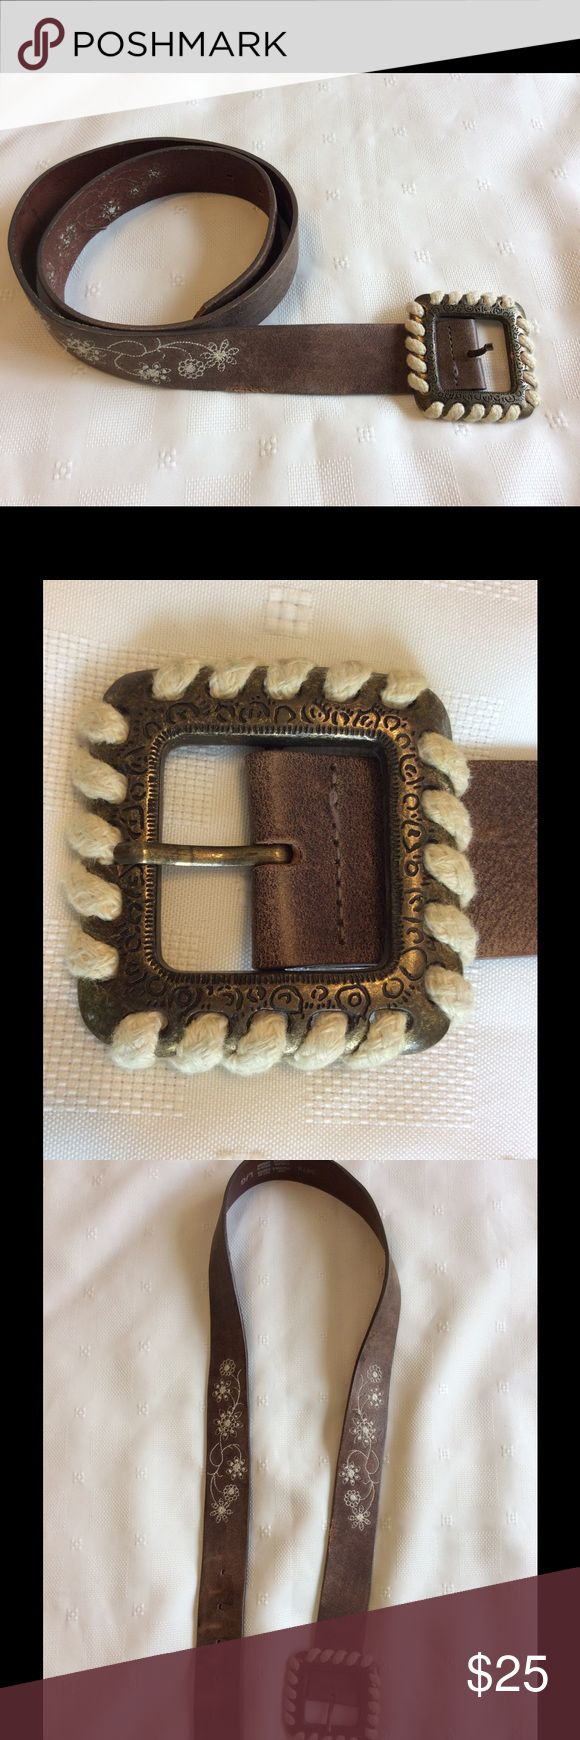 "Great boho hippie leather belt. Genuine leather with white floral stitching.  Rope wrapped buckle.  1 1/2"" wide.  Approx 40"" long without buckle.  6"" from tip to notch farthest from tip.   Has some wear as shown in pictures. Sz L/G Accessories Belts"